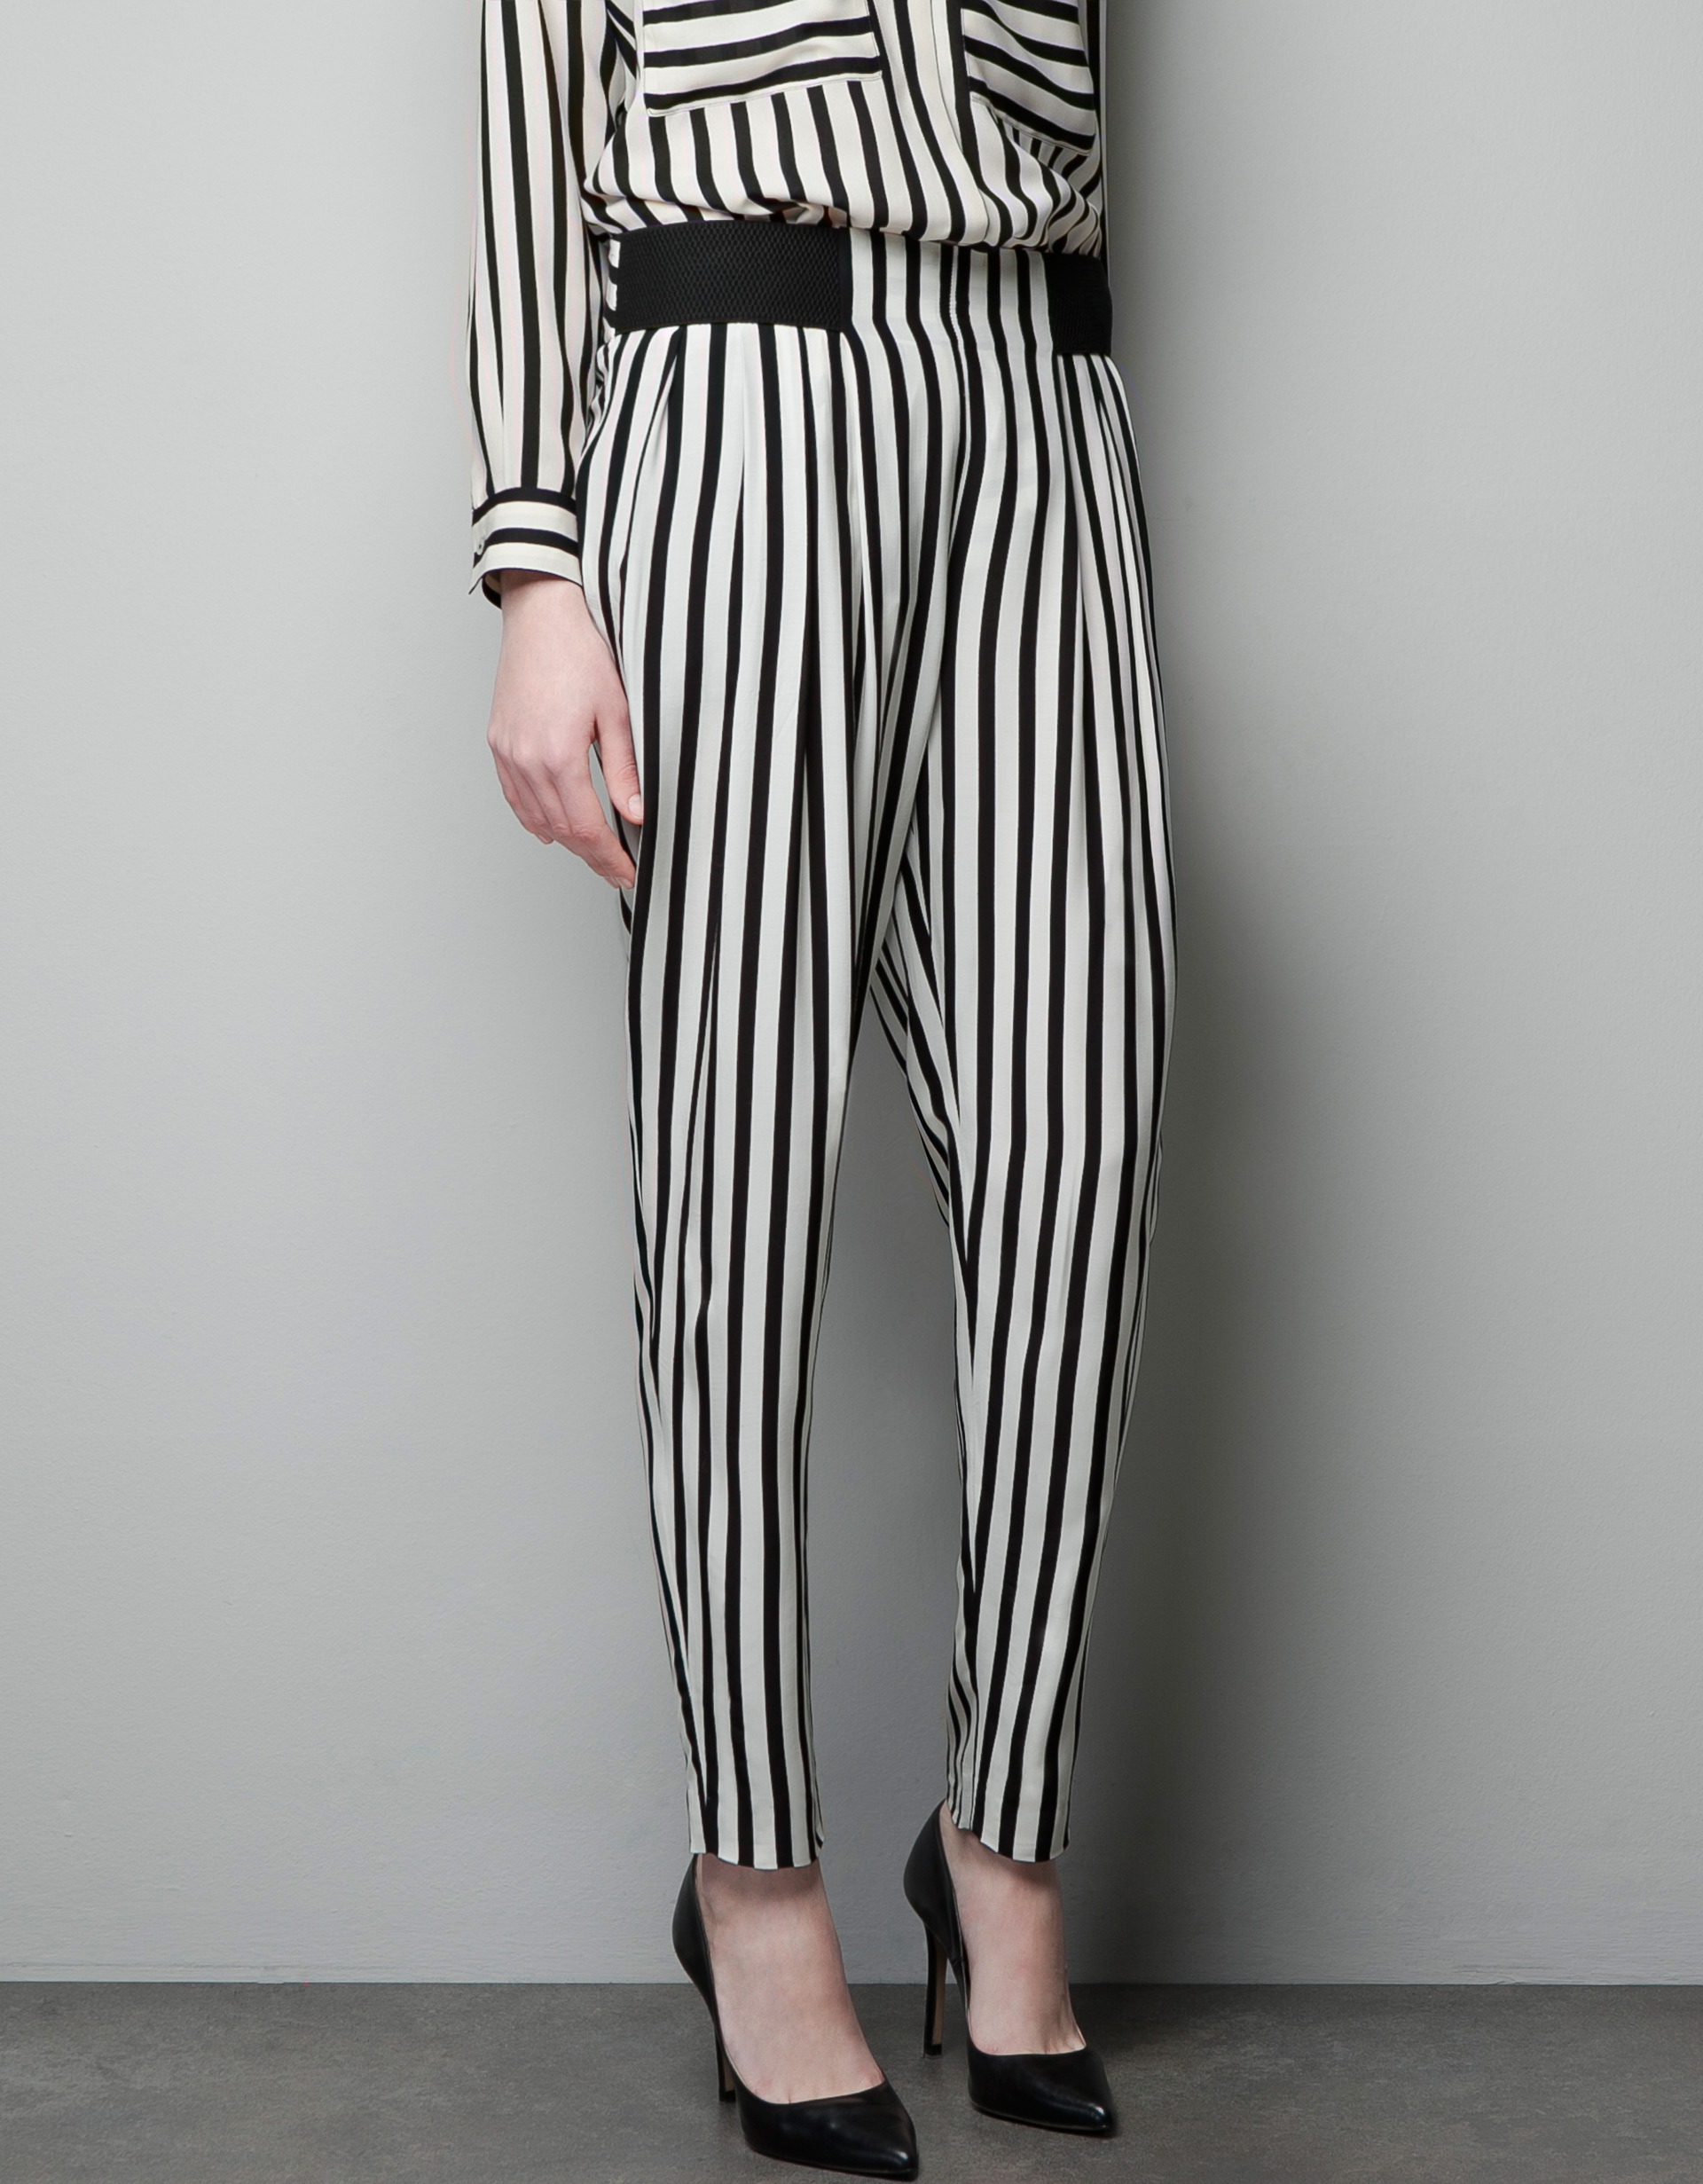 Give your officewear an update with black and white stripe trousers, available in tapered to tie-waist styles. With options that take your outfit from day to night, find your favourites from striped wide leg trousers to side stripe joggers and striped culottes.